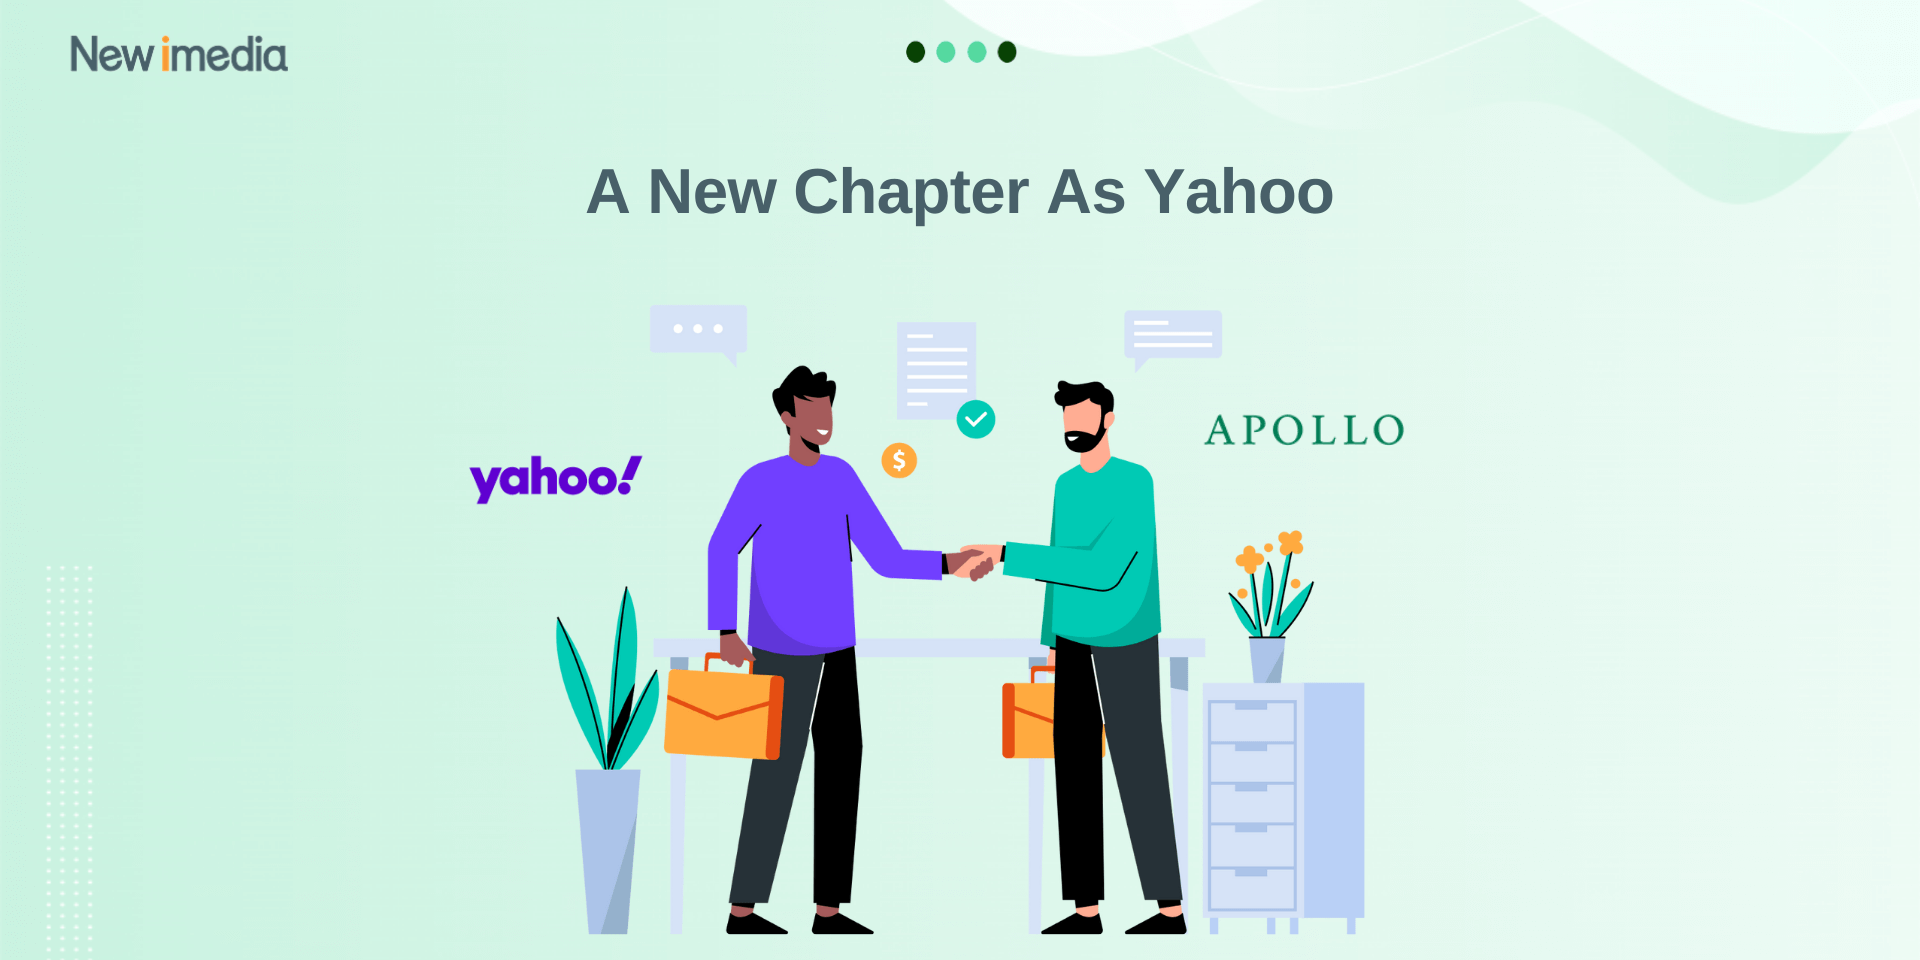 A New Chapter As Yahoo